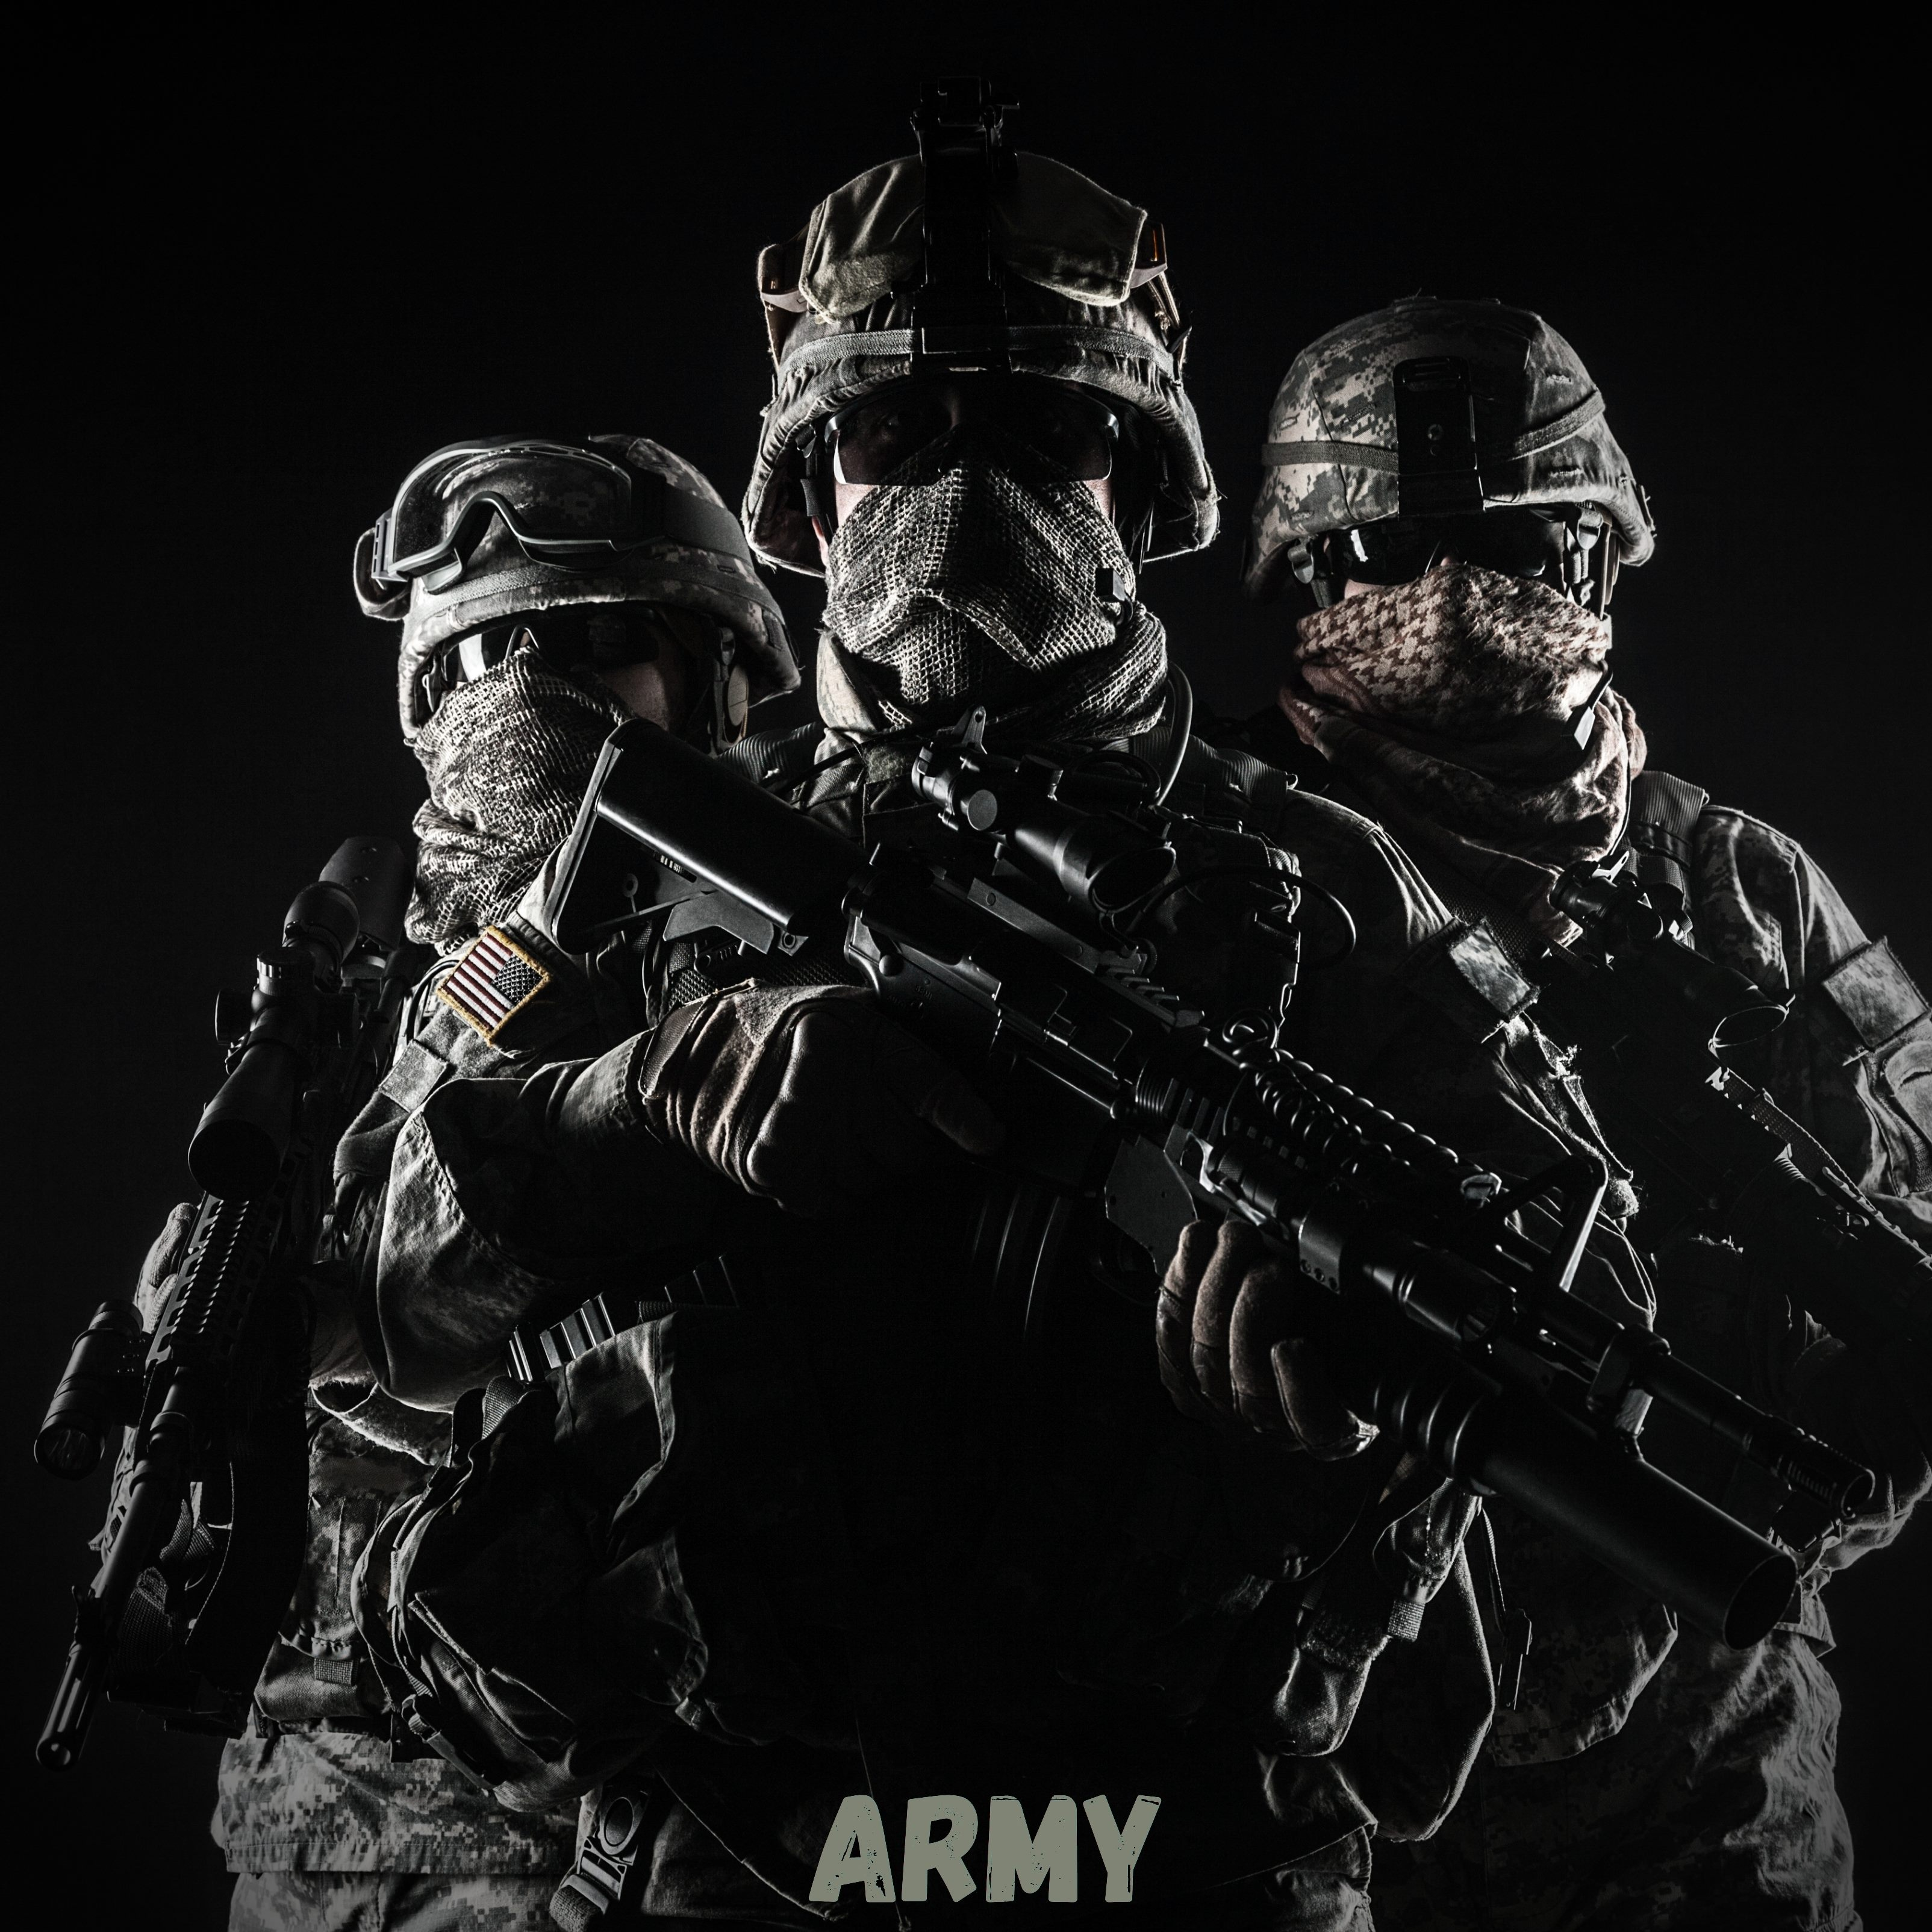 Army Soldiers iPad Wallpaper